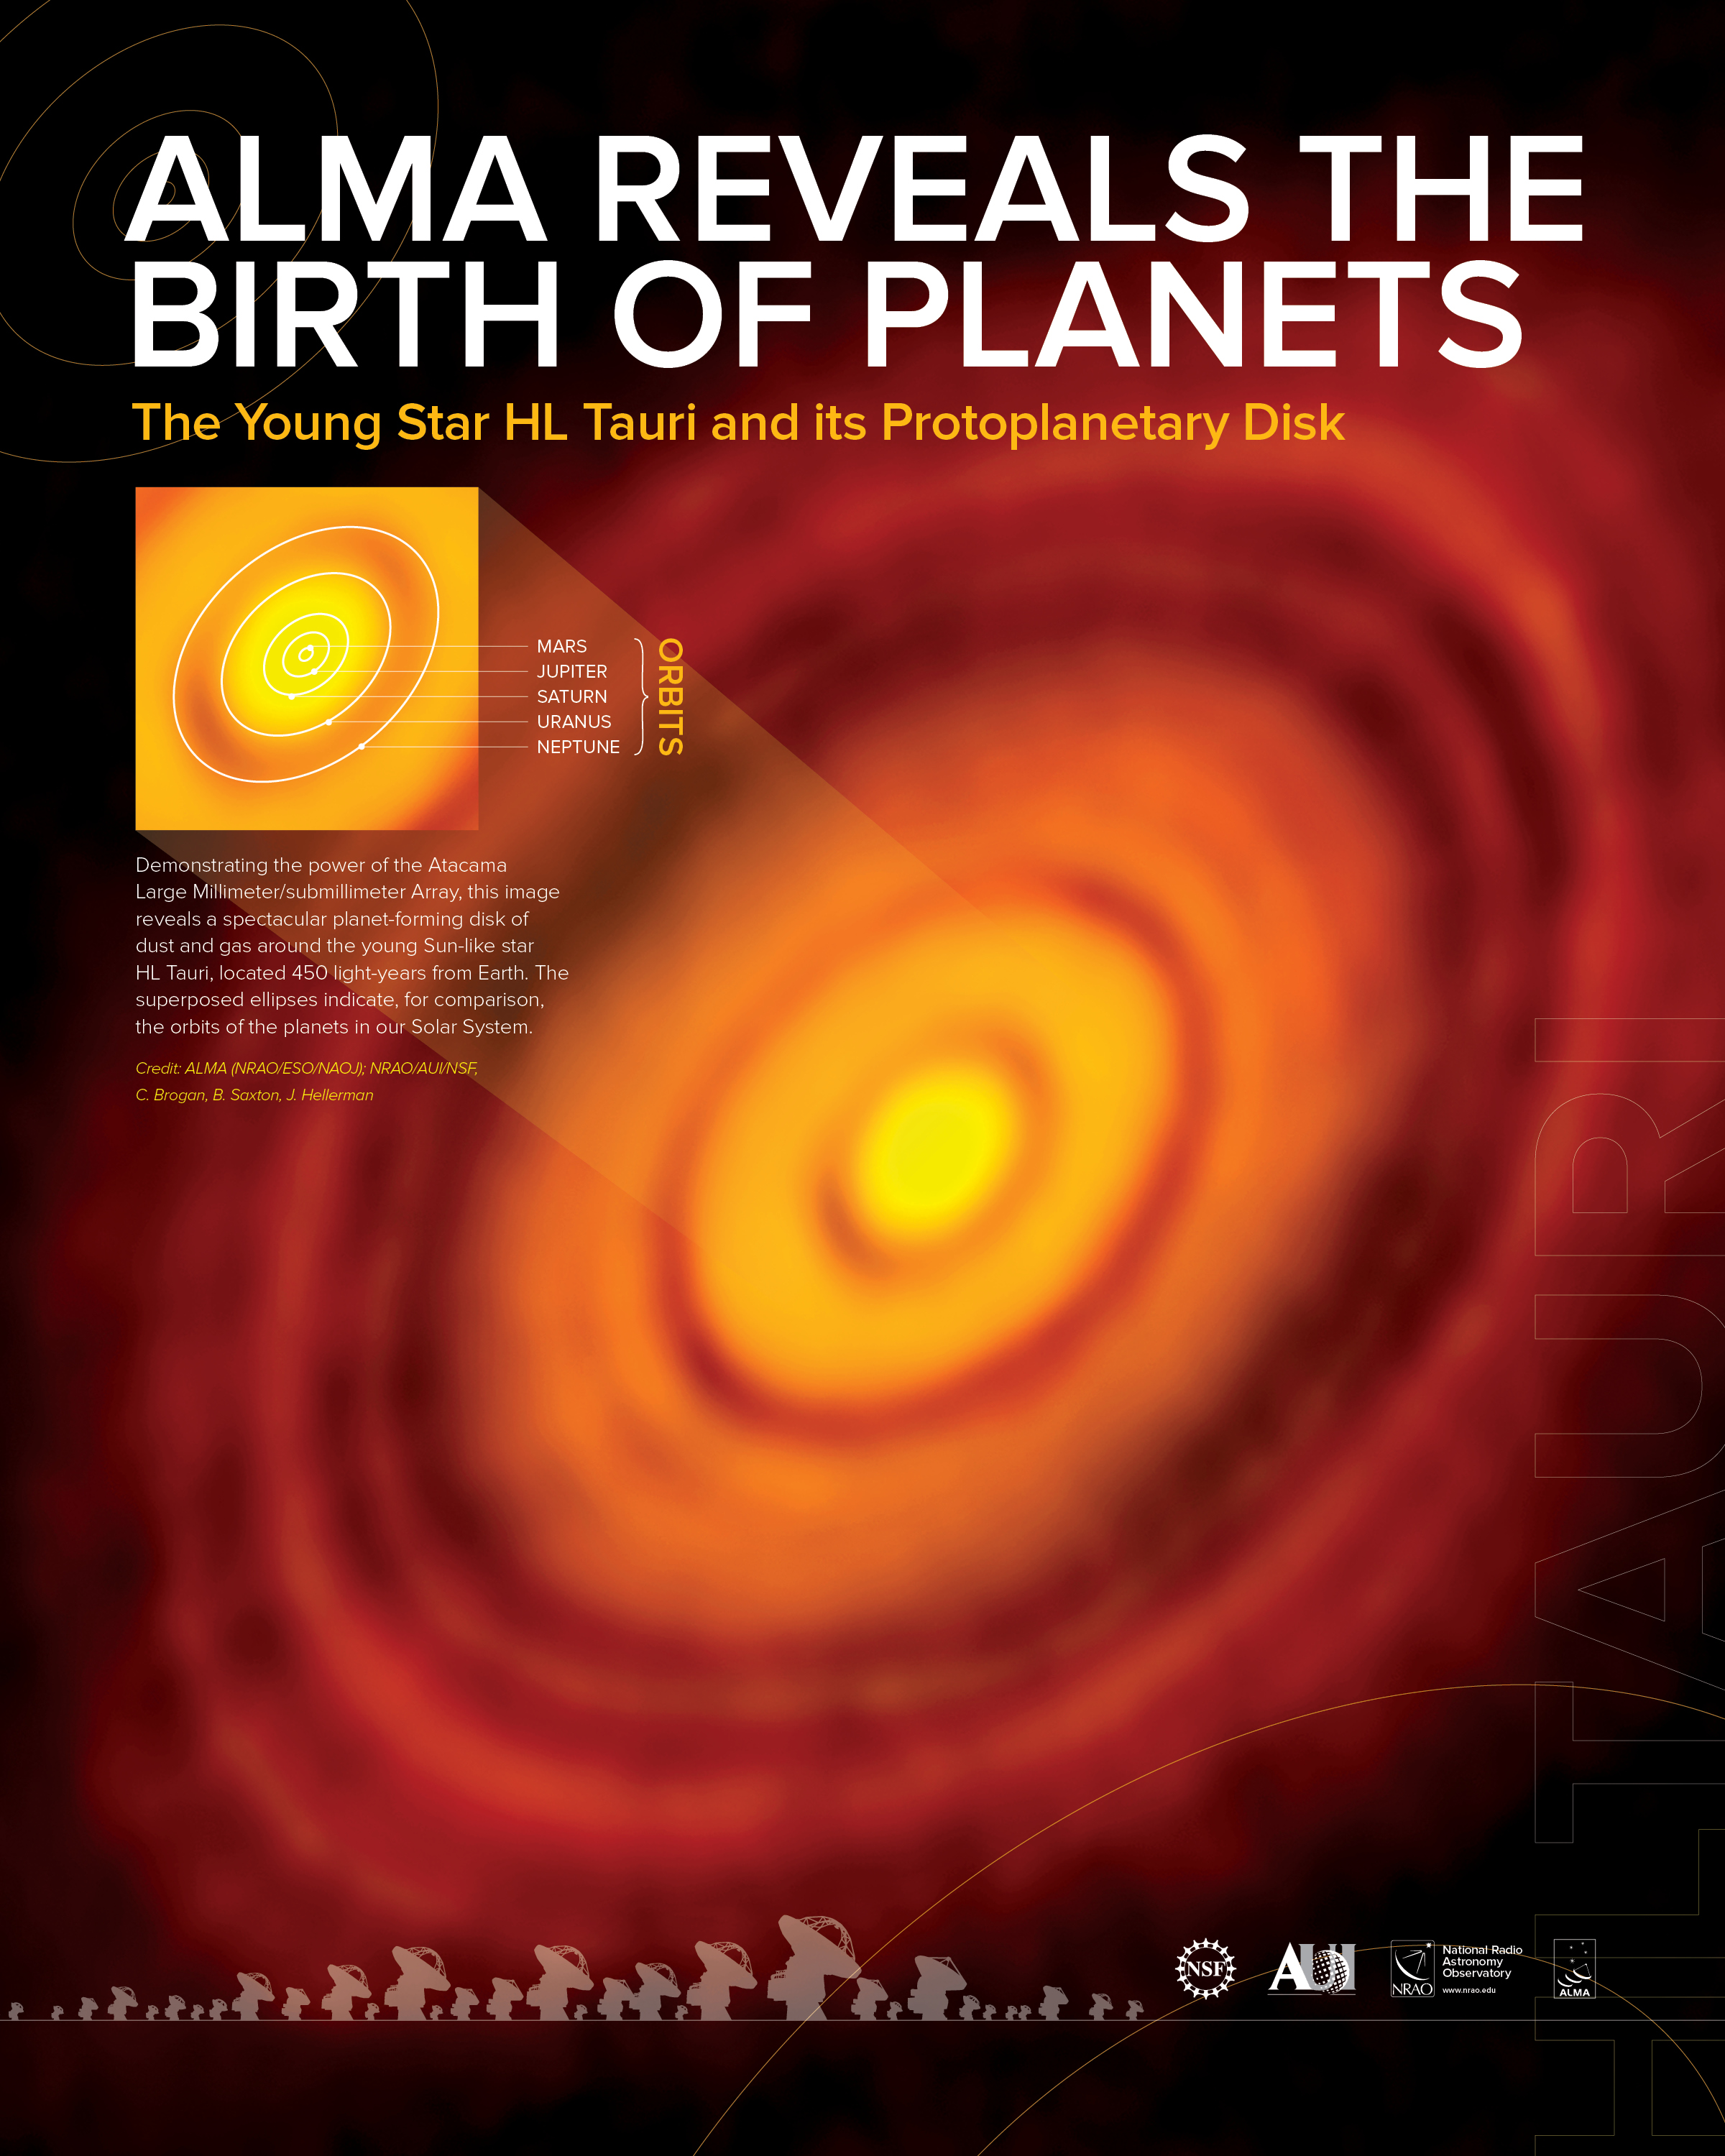 HL Tau – ALMA Reveals the Birth of Planets Poster